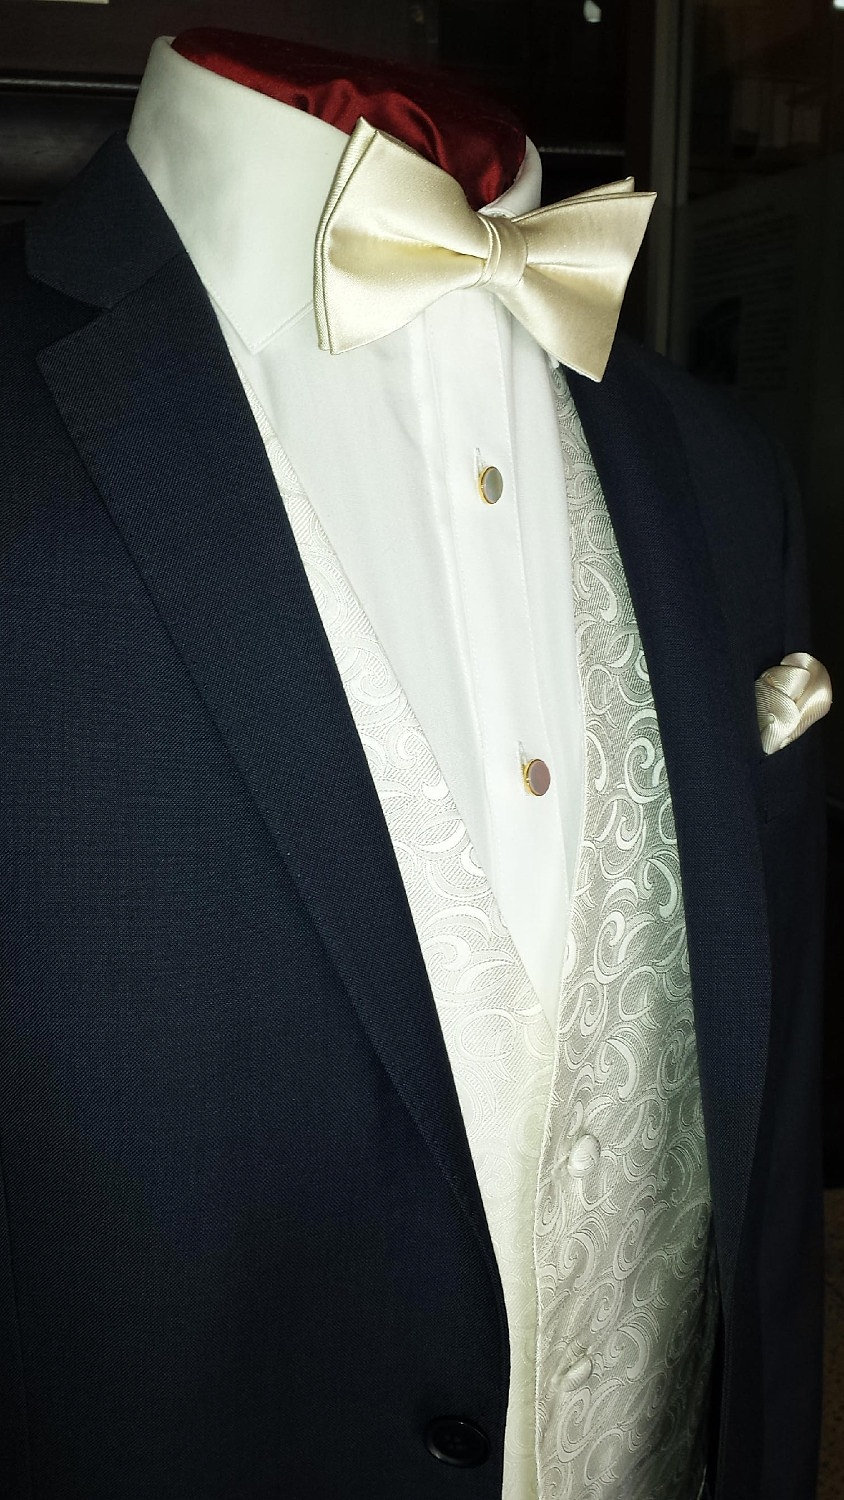 ... matching hankie. Dress shirt with Mother of Pearl Studs and Cufflinks